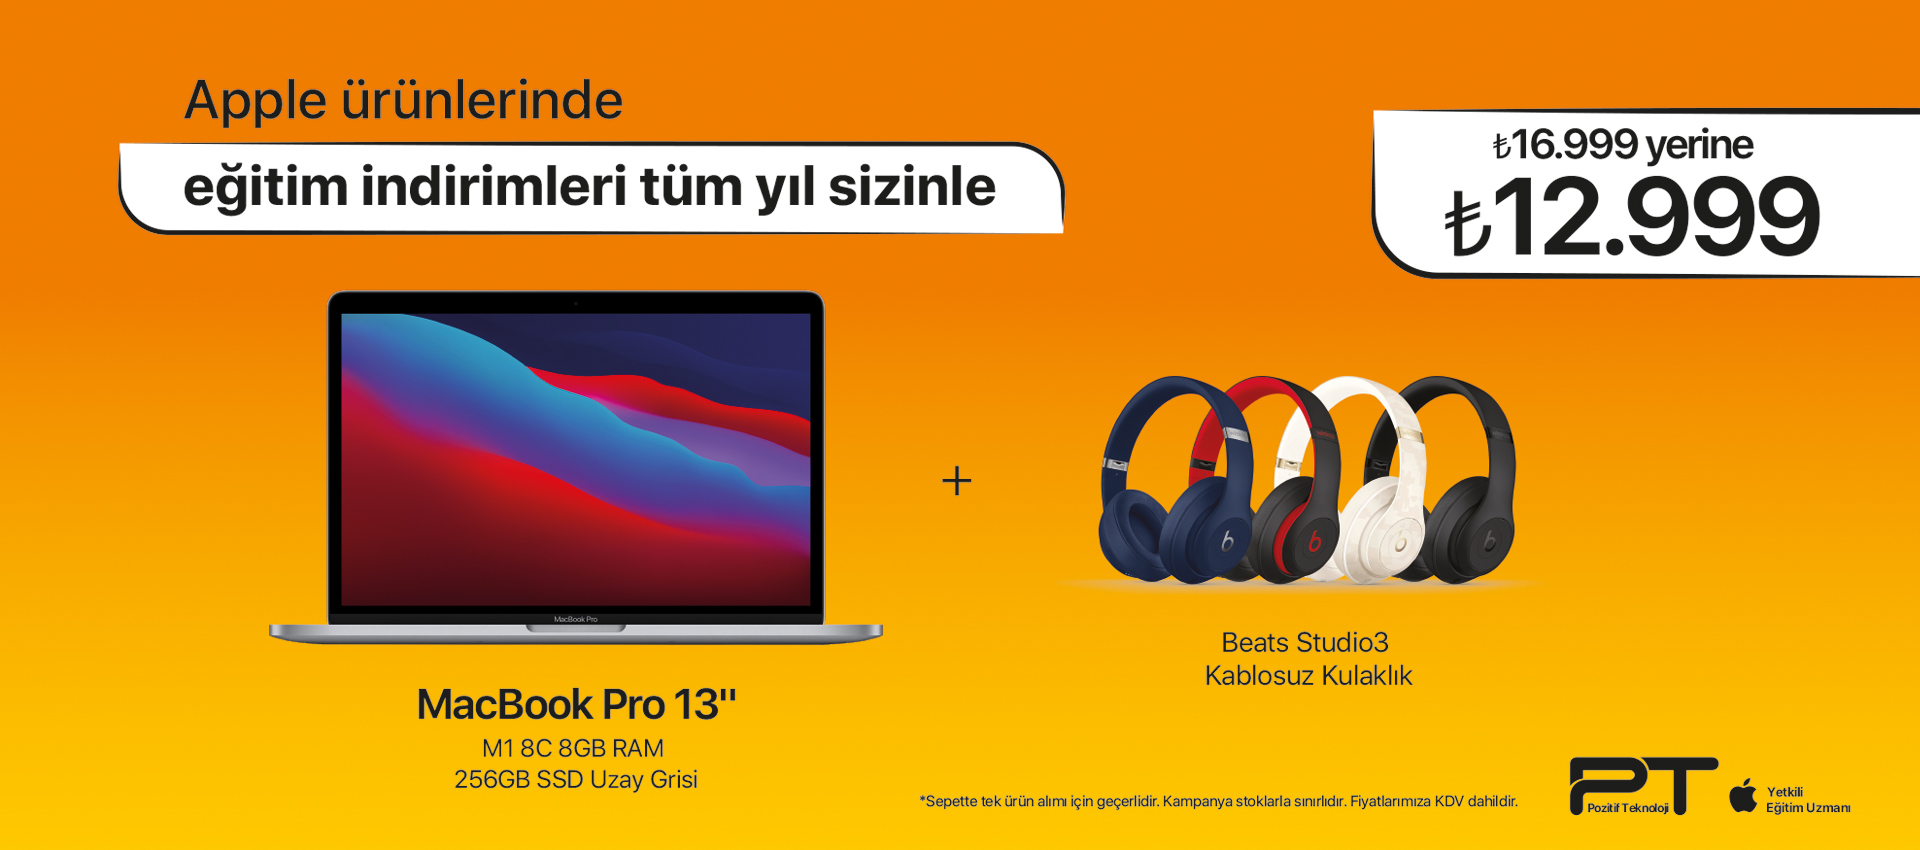 macbook pro M1-BEATS STUDİO